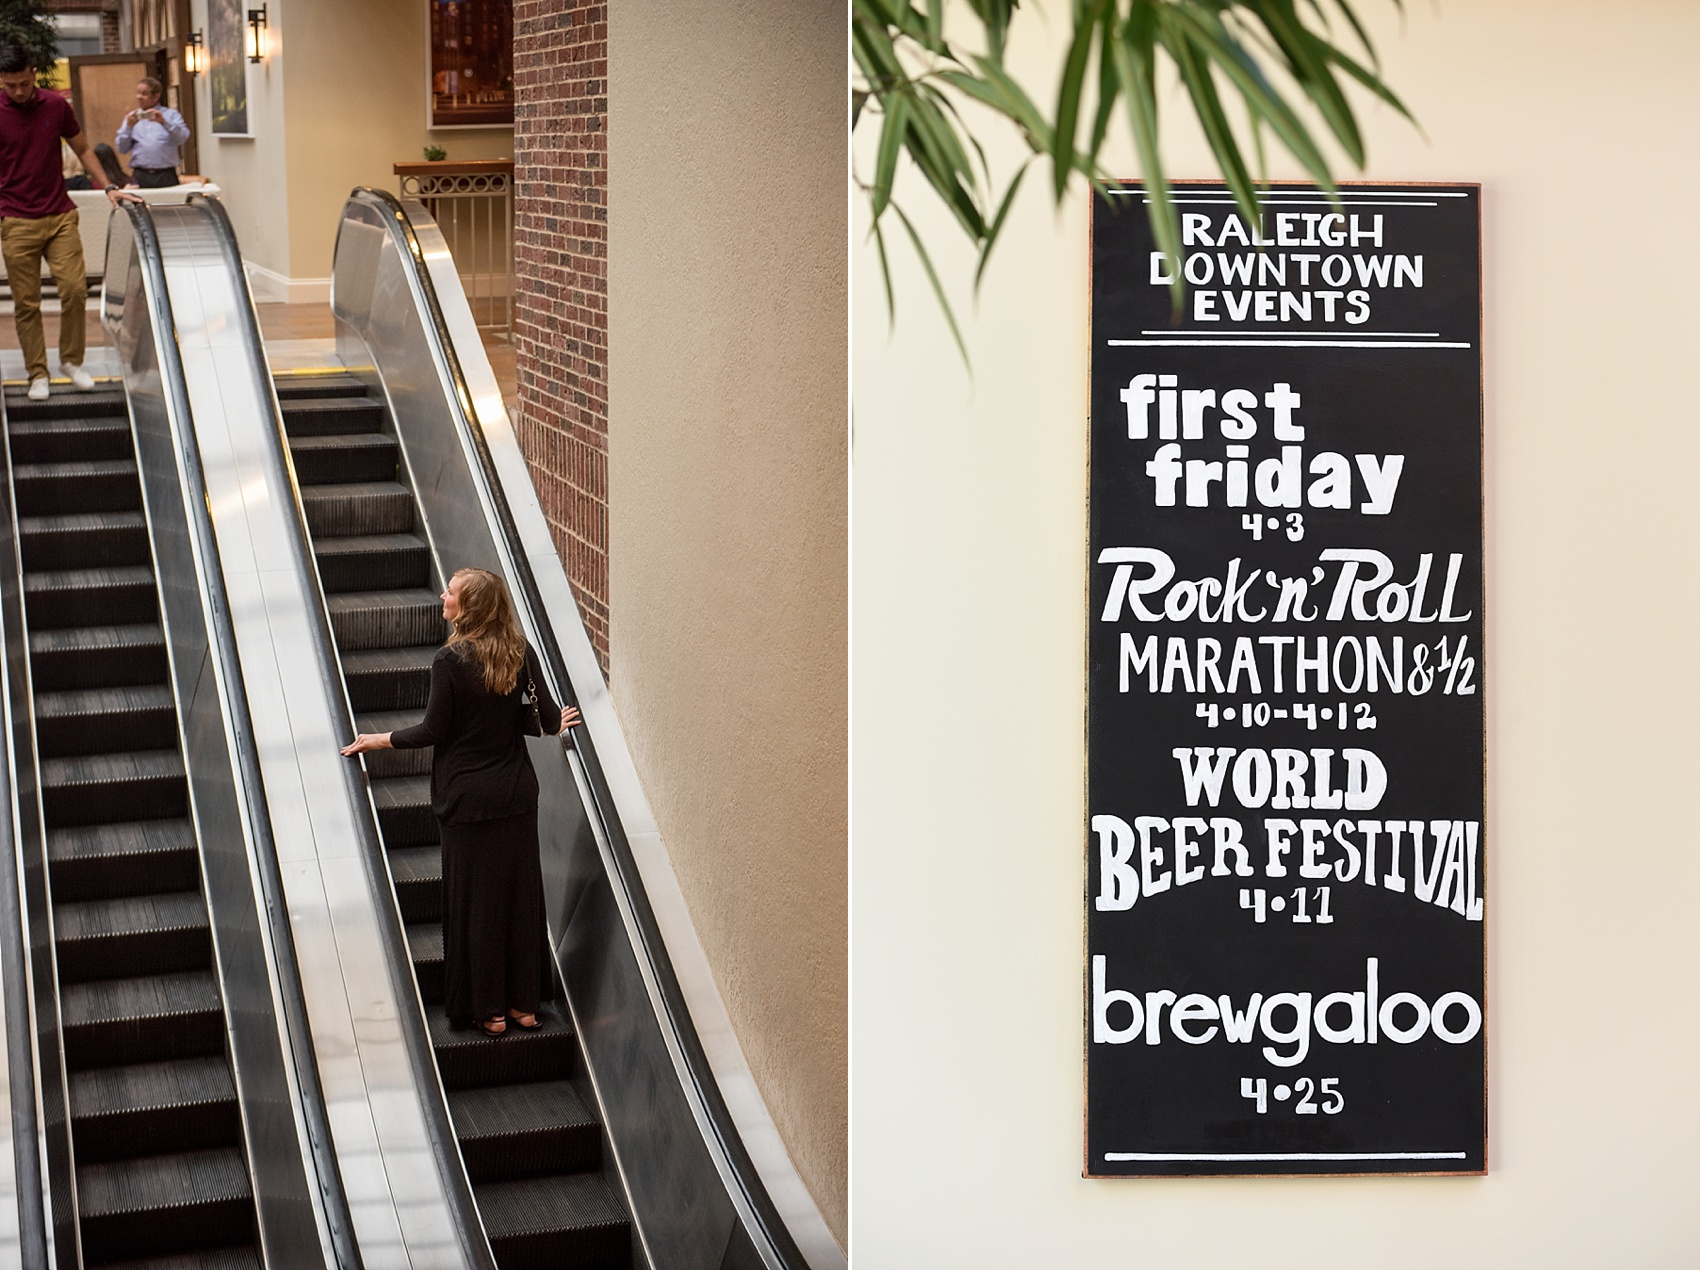 Raleigh wedding photographer, Mikkel Paige Photography, captures downtown #proposal at the Sheraton hotel during Brewgaloo.